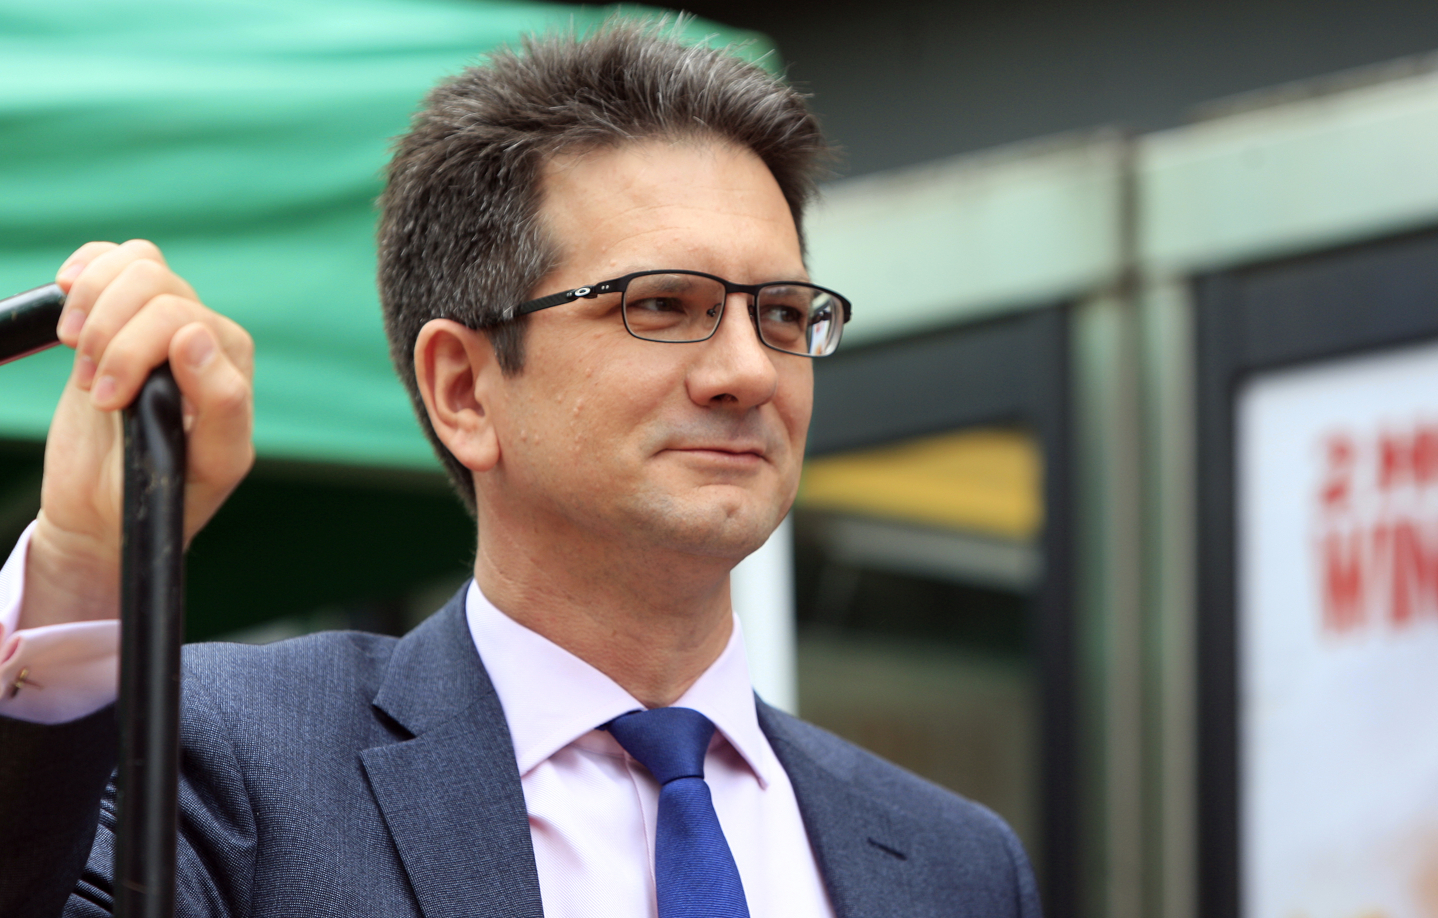 Steve Baker said he was 'gravely worried' for the future of his party